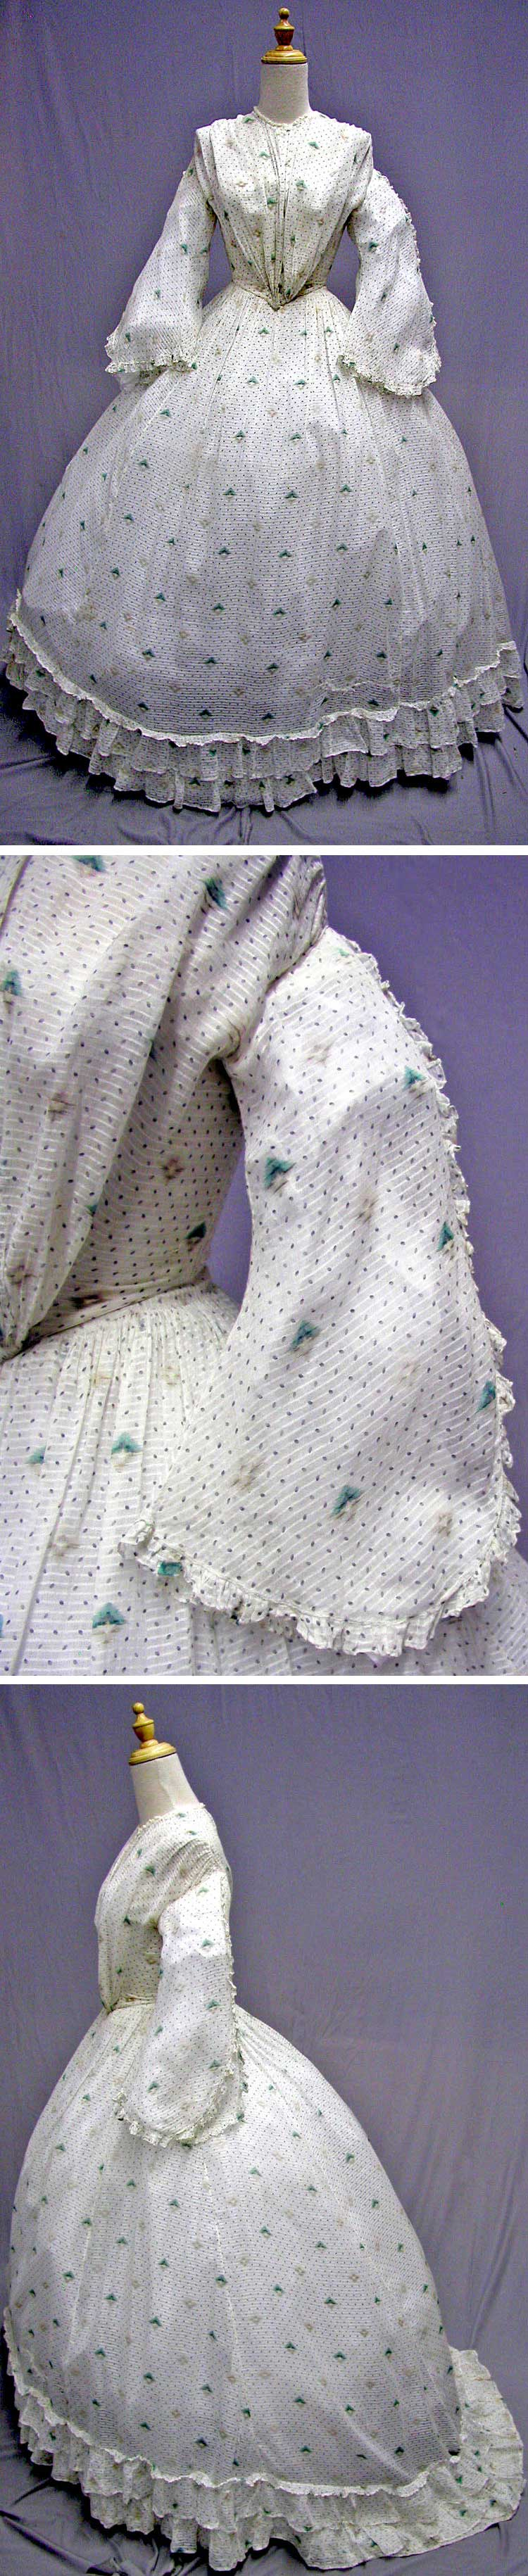 Summer day dress, 1865. Sheer cotton print. svpmeow1/ebay